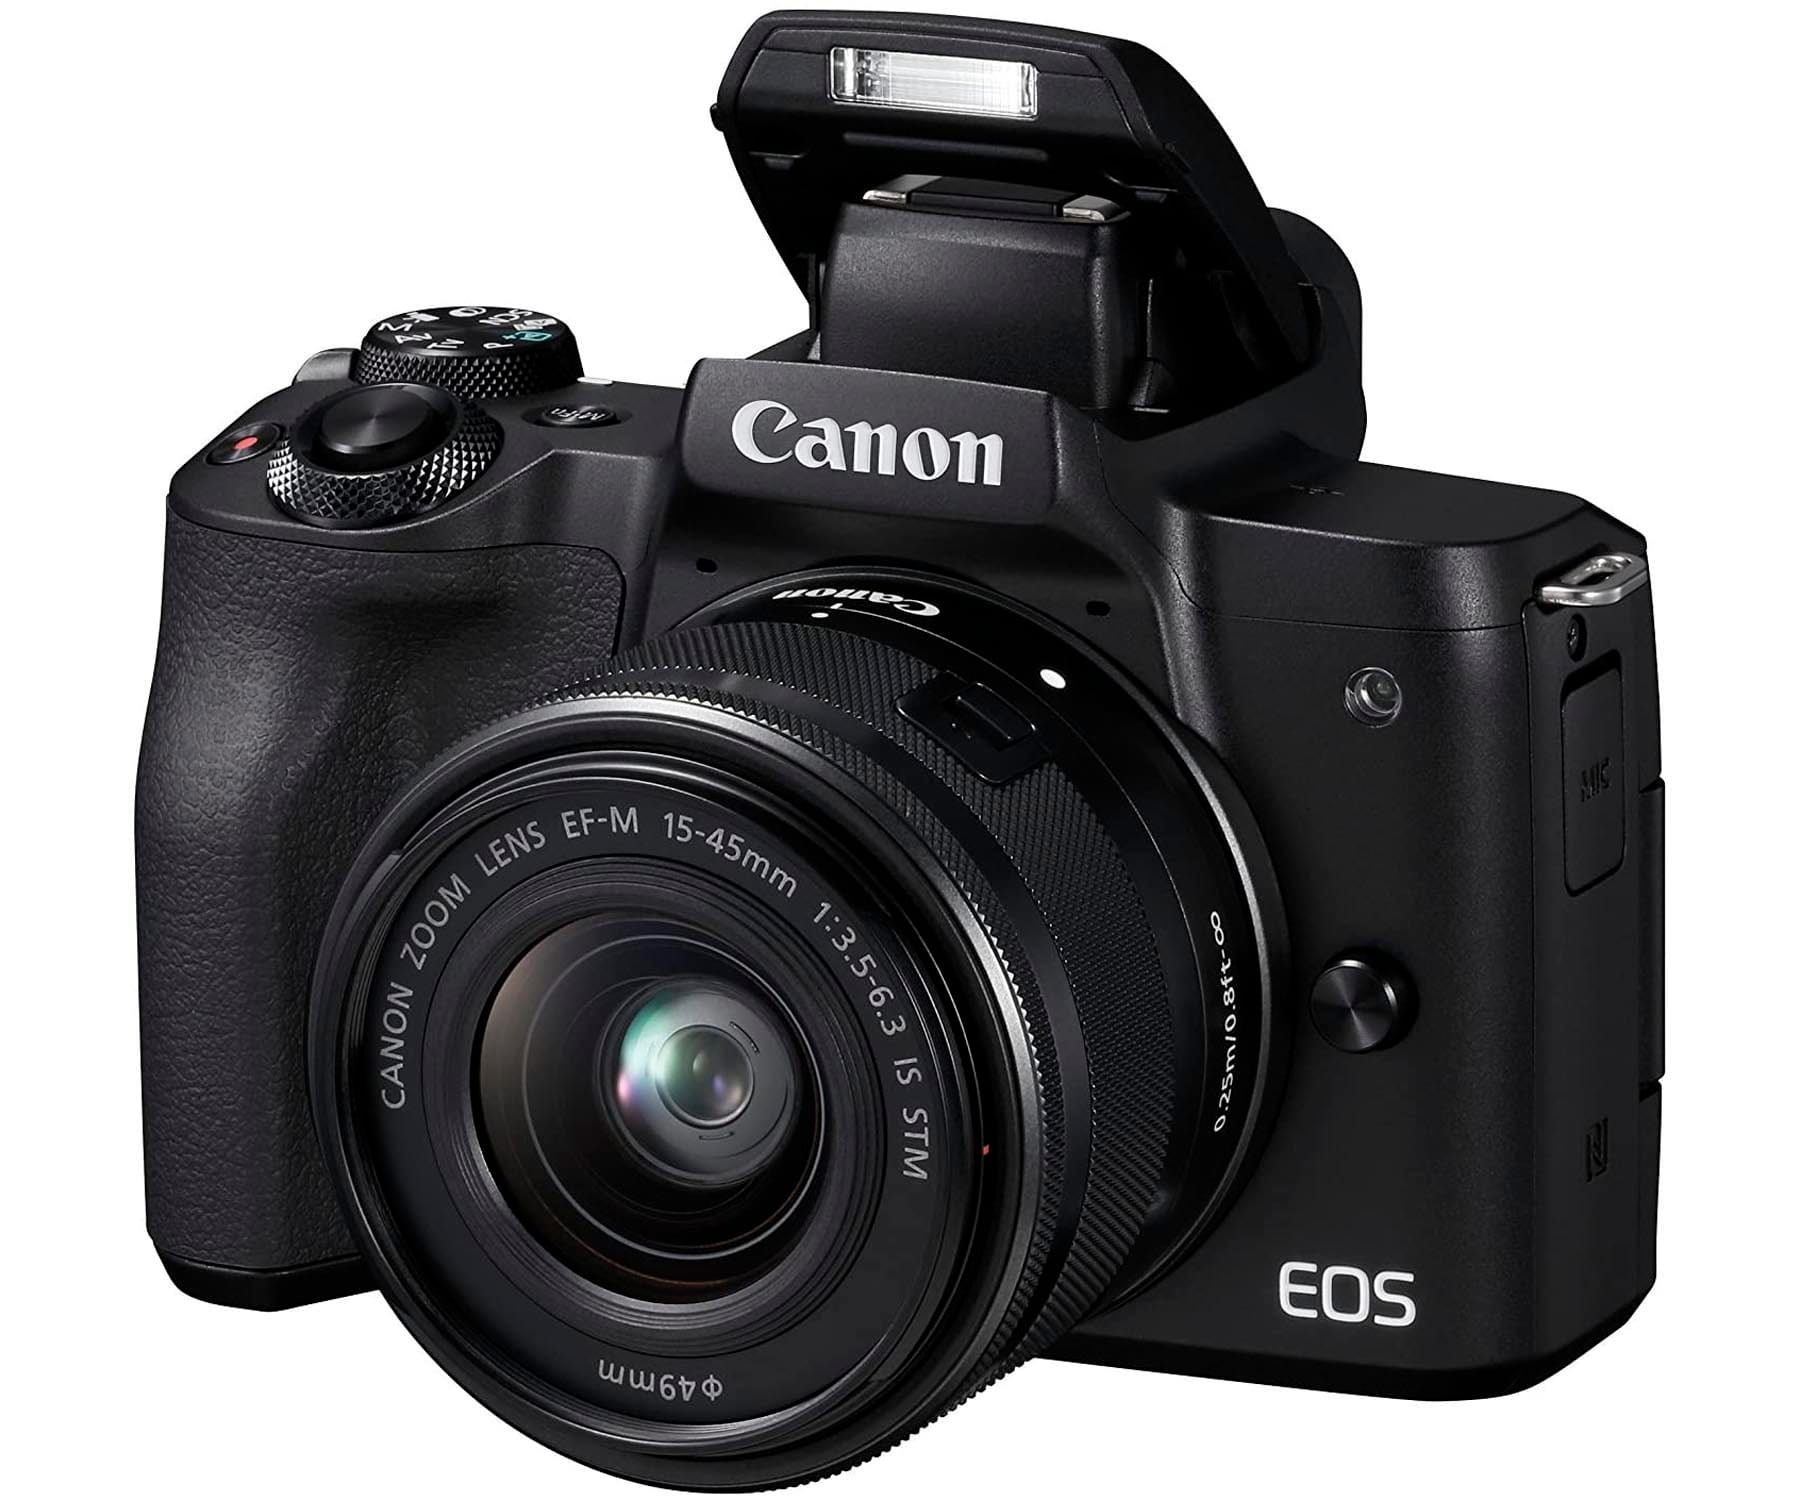 CANON KIT EOS M50 NEGRO CÁMARA 24.1MP 4K DIGIC 8 WIFI NFC BLUETOOTH + OBJETIVO EF-M 15-45mm